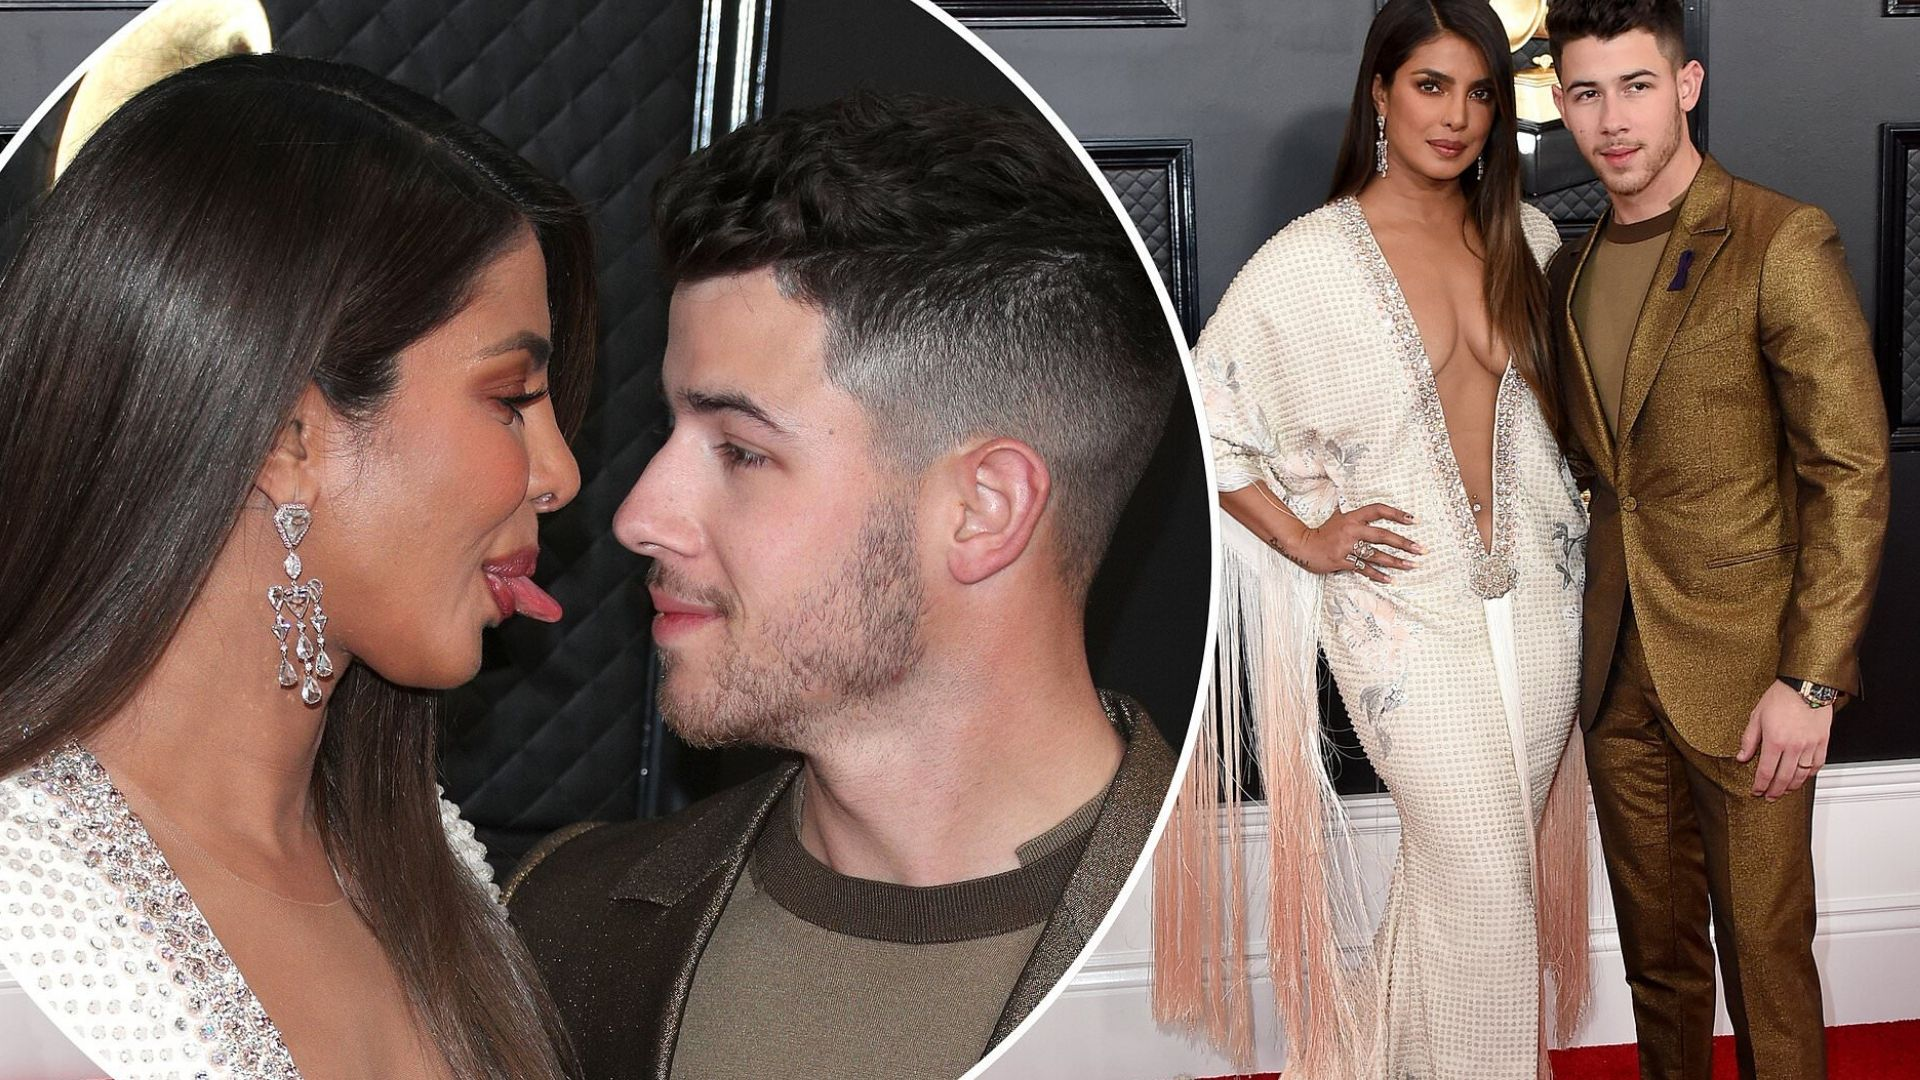 Priyanka Chopra in plunging fringe gown brings the va va voom to the Grammy Awards